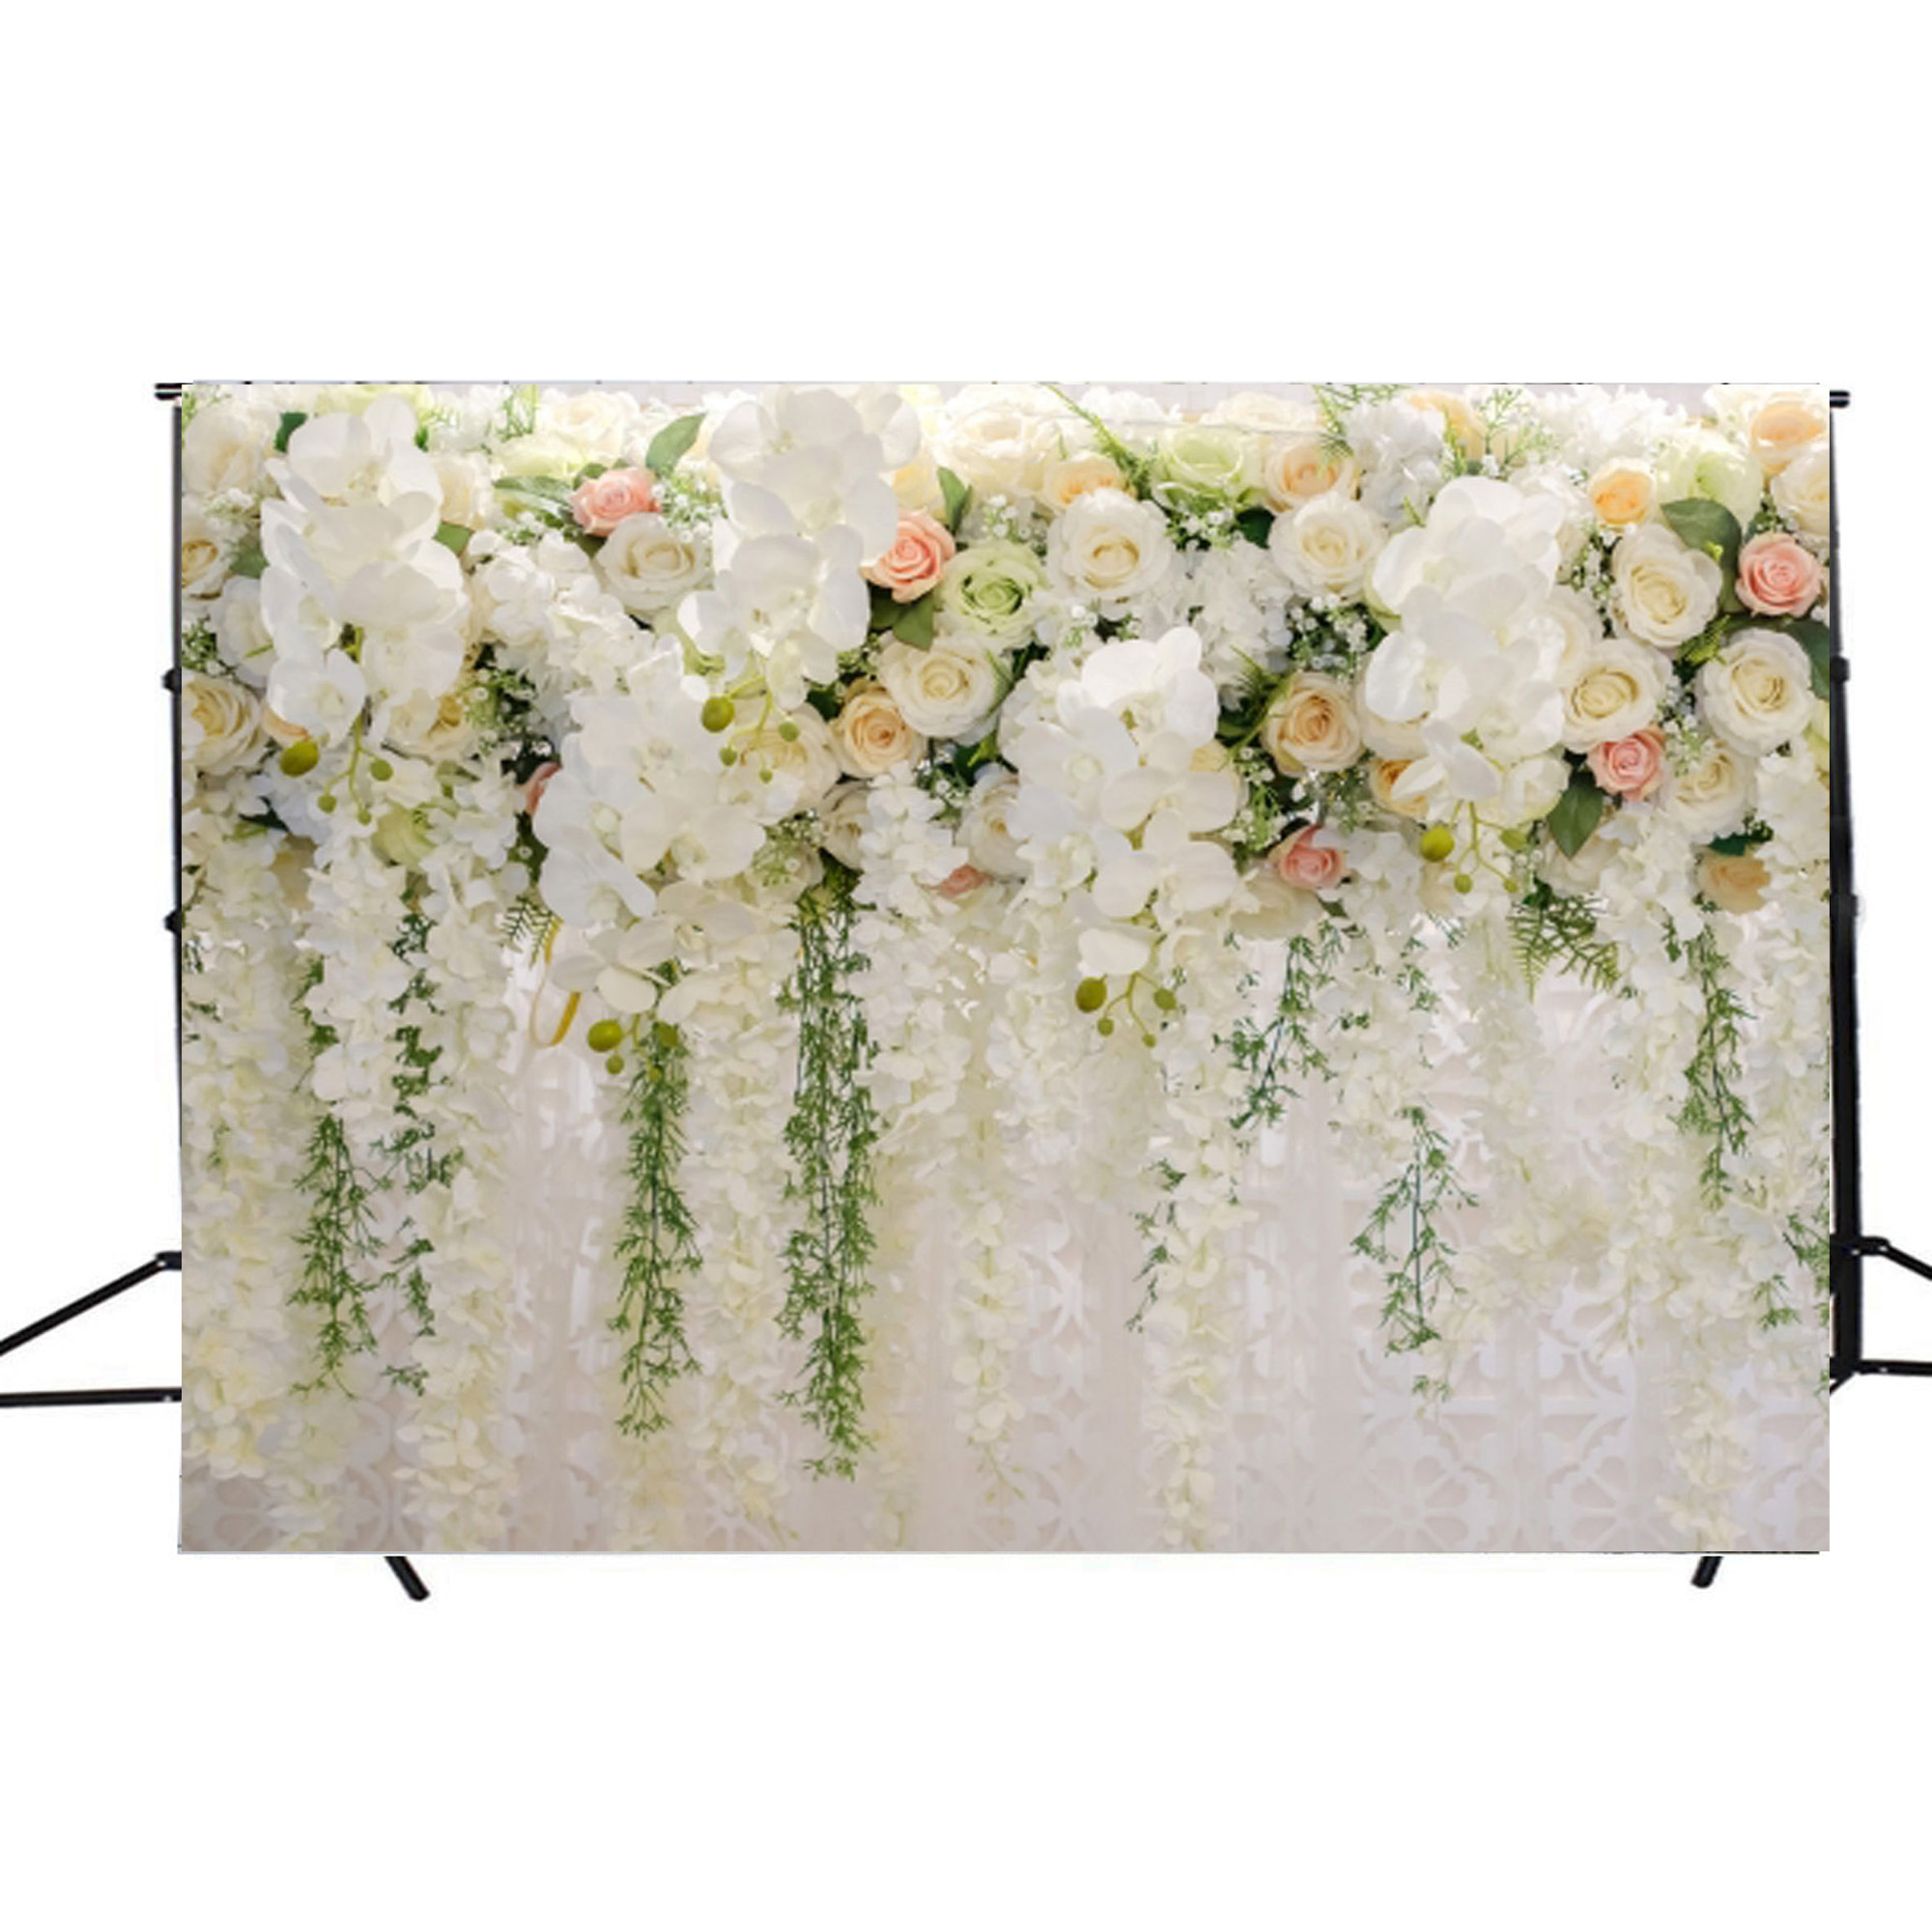 8x8FT Vinyl Photo Backdrops,Umbrella,Floral Feminine Set Photoshoot Props Photo Background Studio Prop